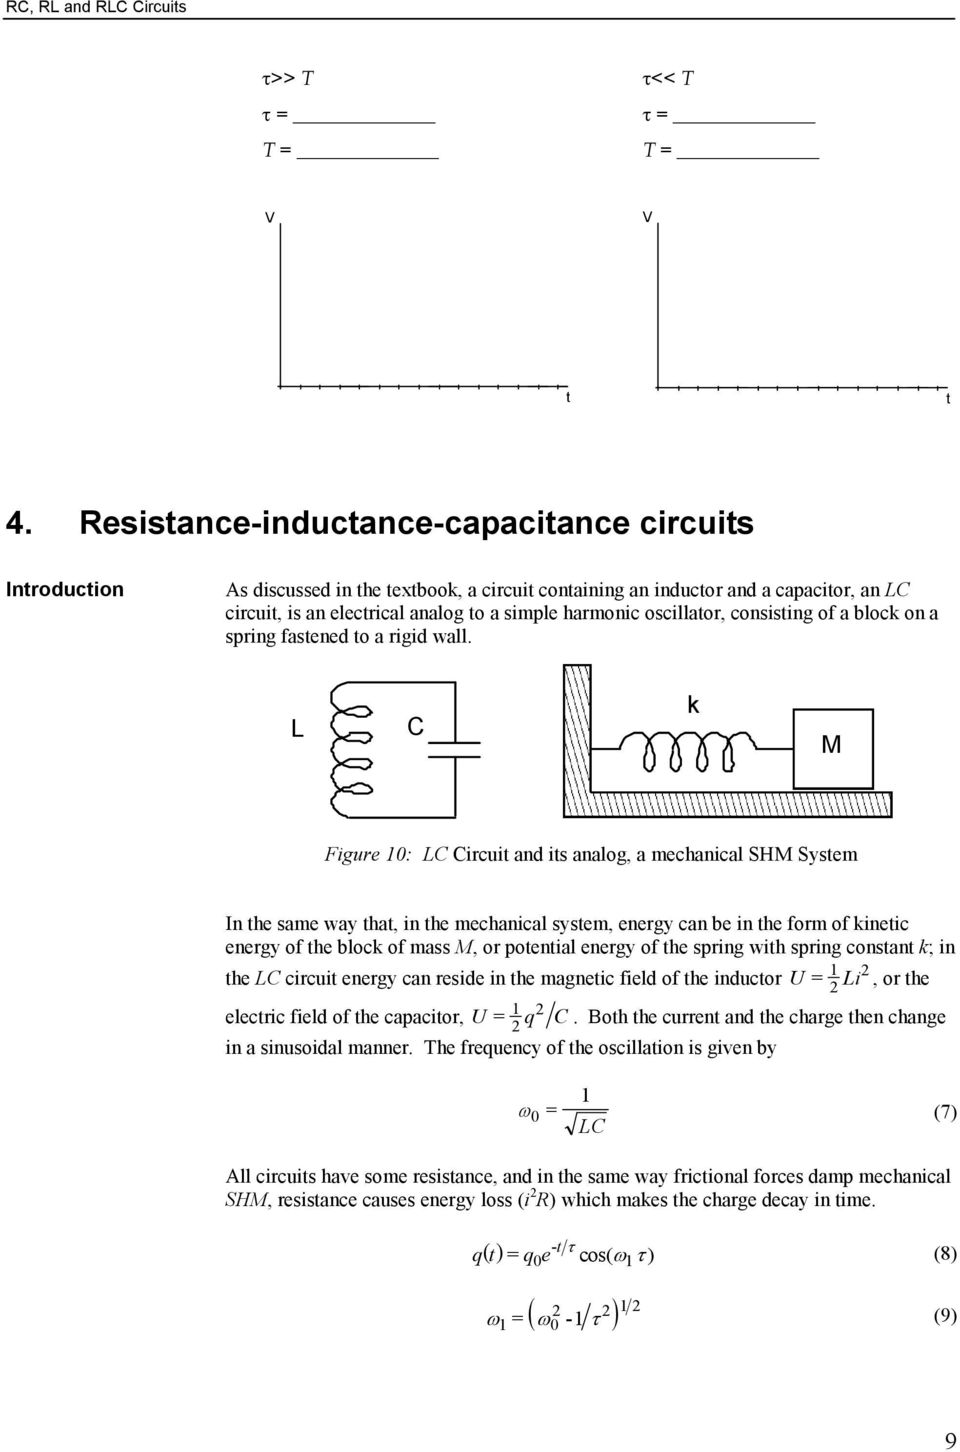 Rc Rl And Rlc Circuits Pdf Parallel Electrician Period 2 Consising Of A Block On Spring Fasened O Rigid Wall